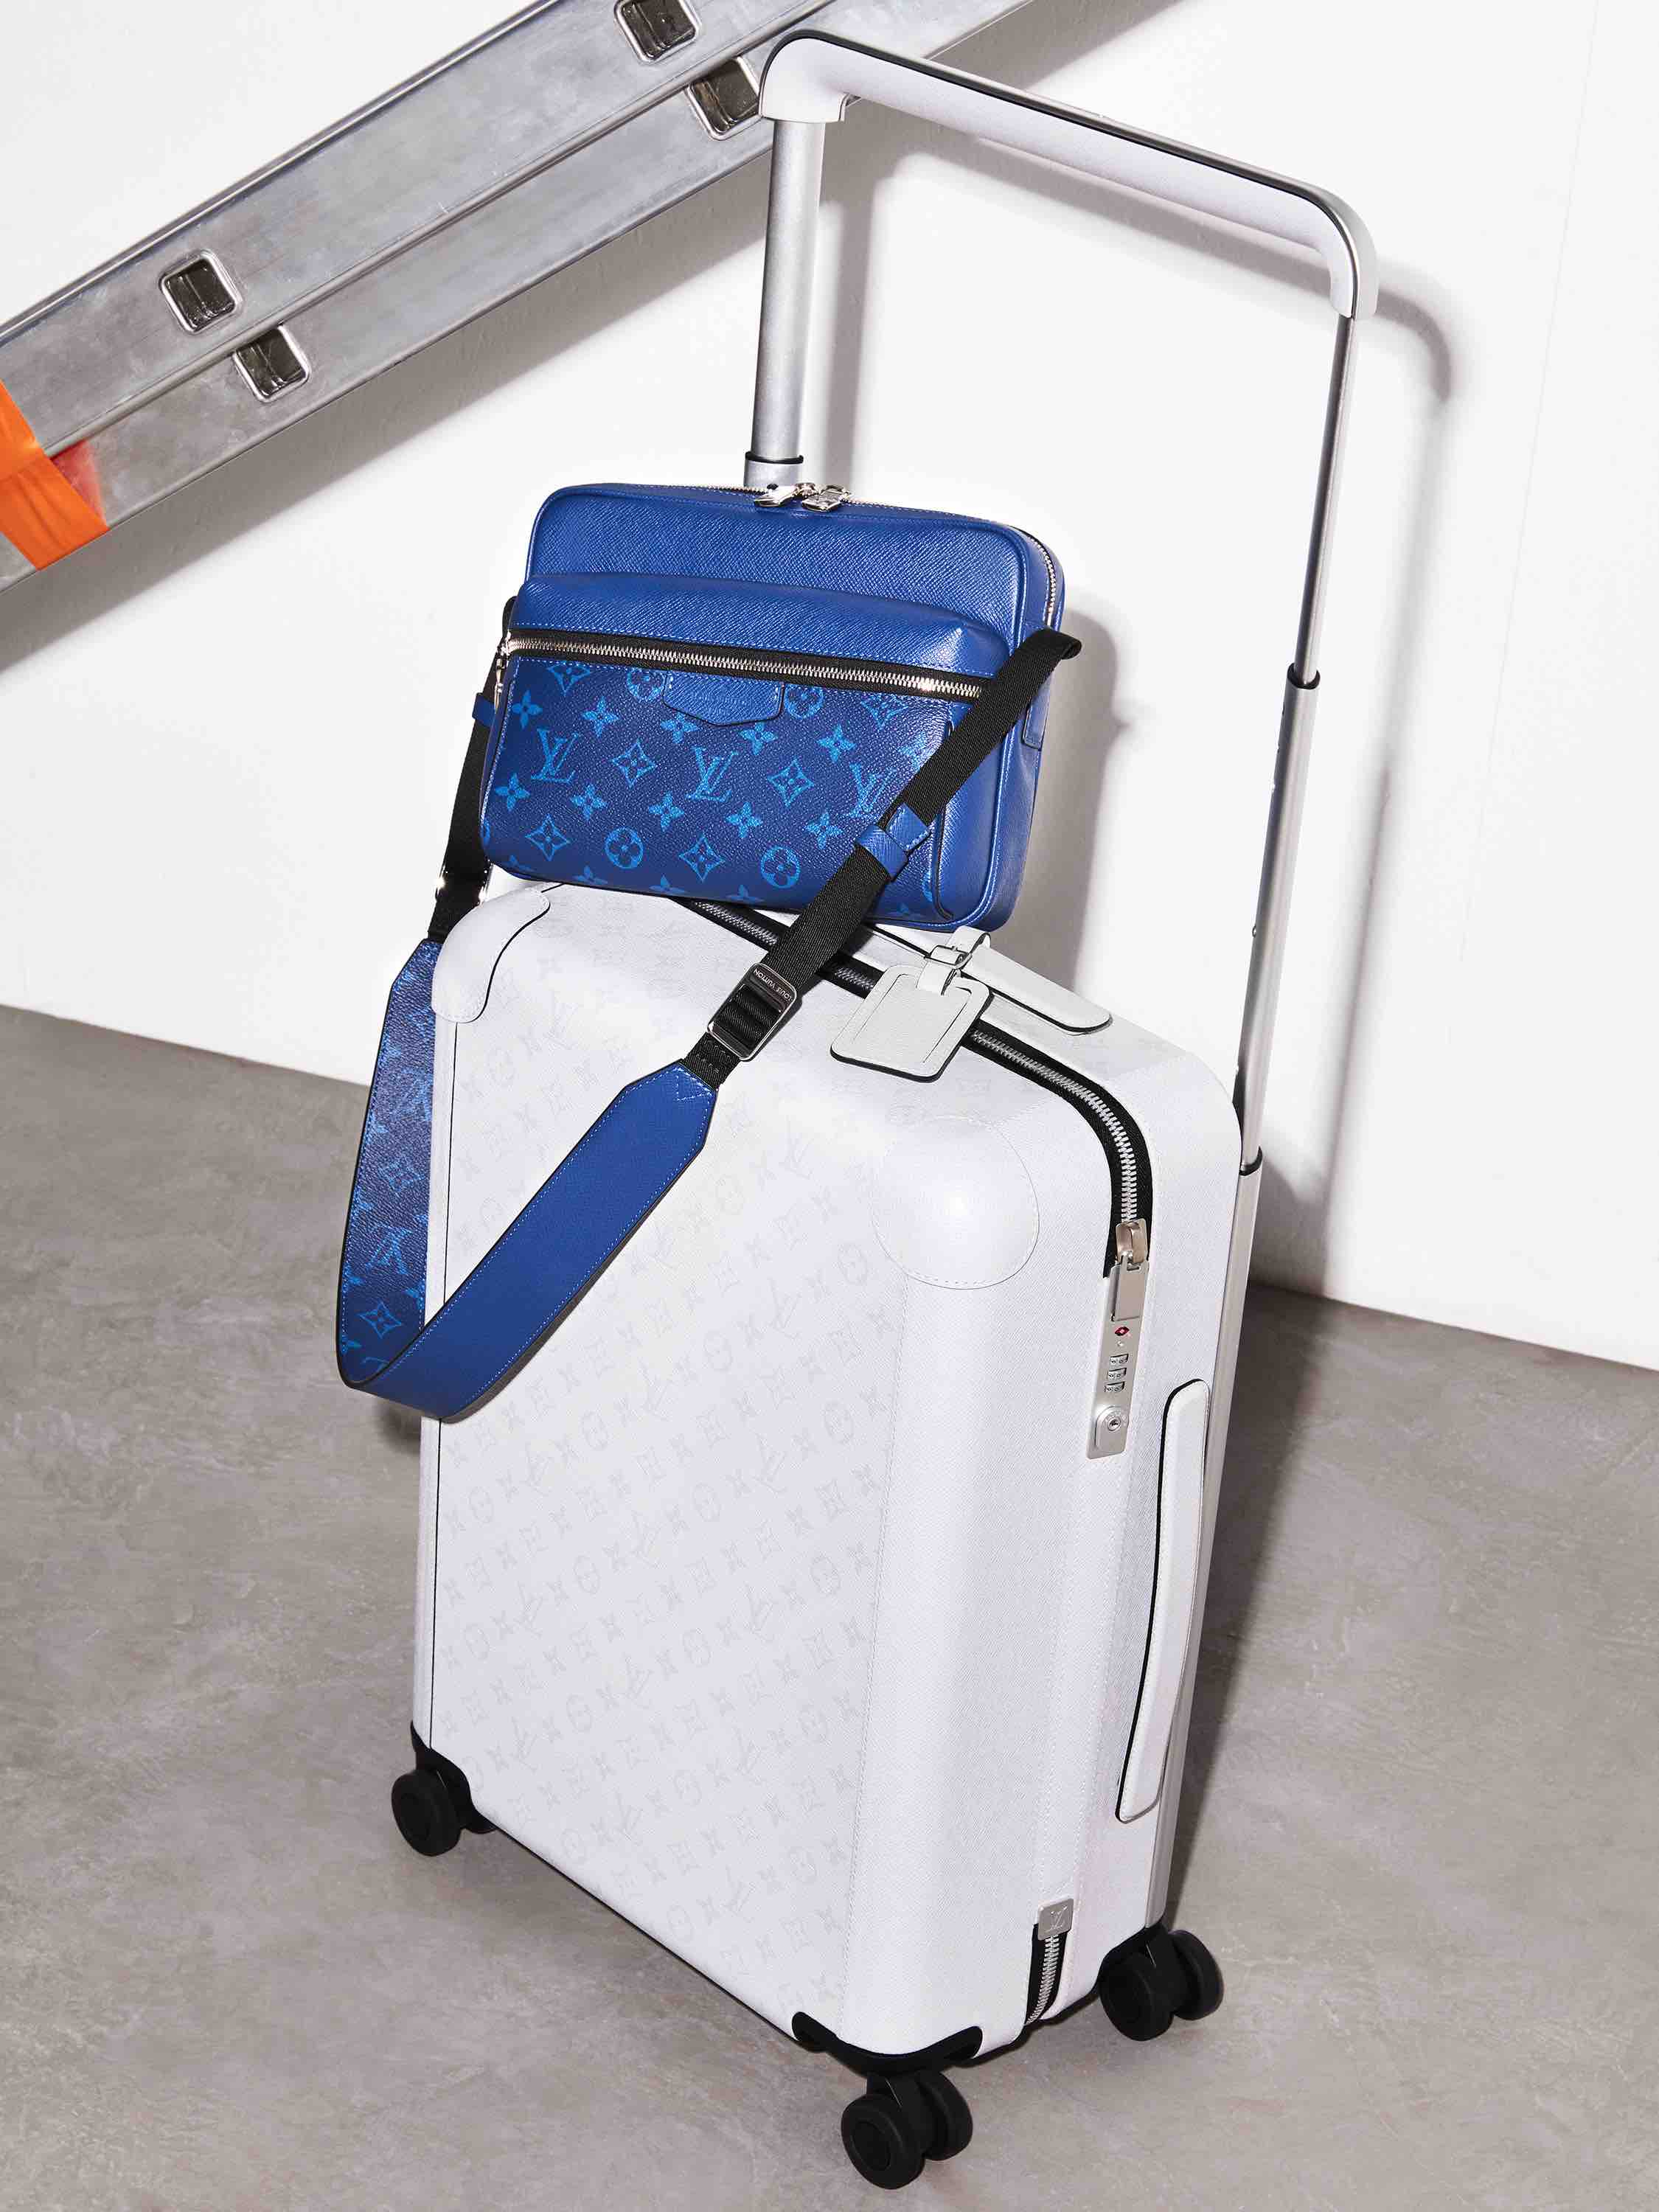 Louis Vuitton Taigarama Collection white suitcase and blue crossover bag